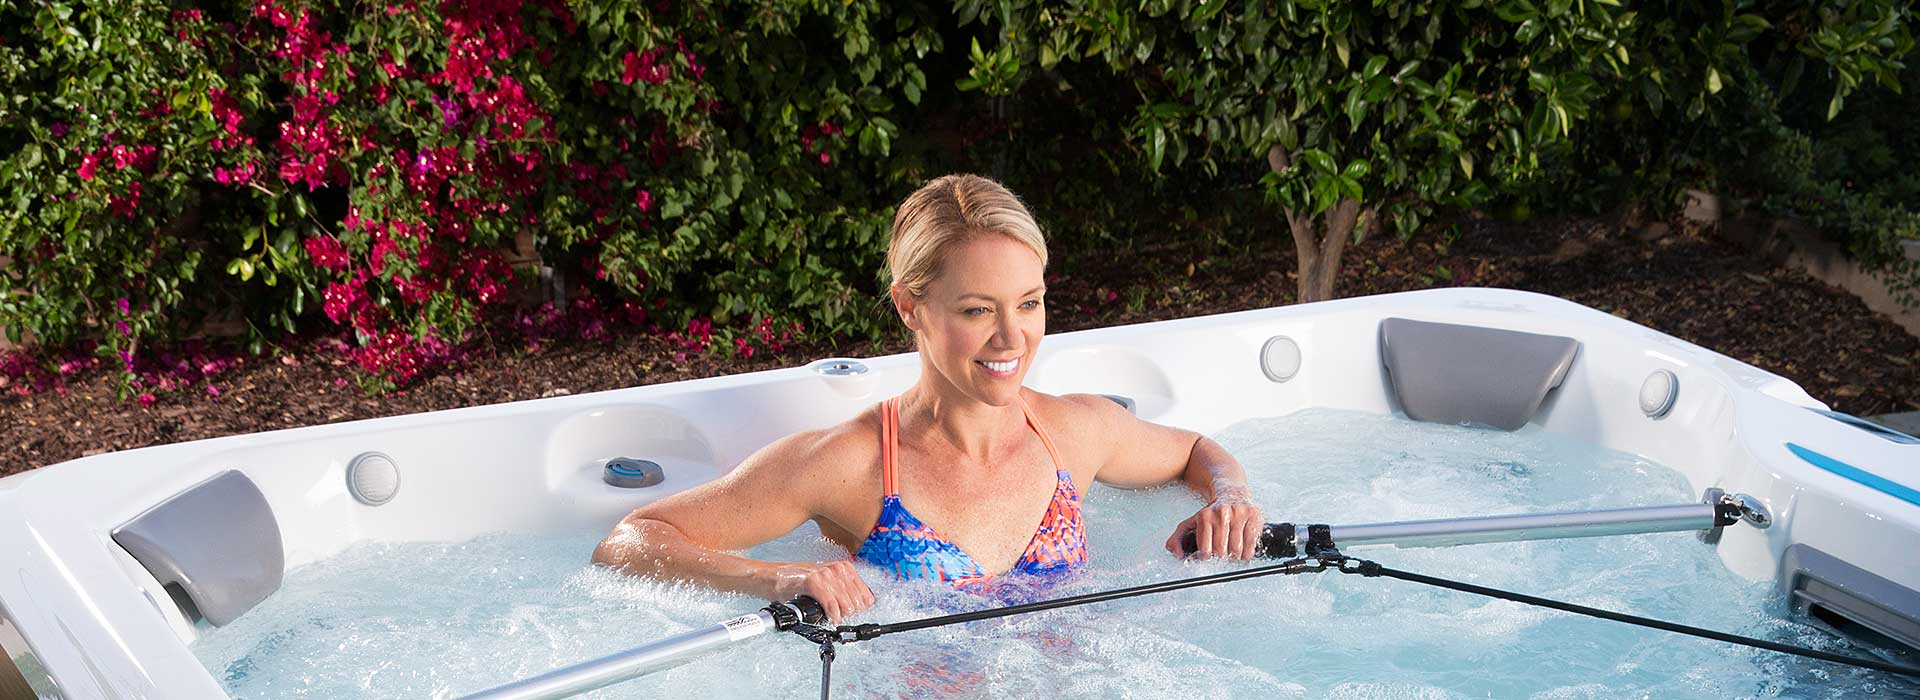 Improve Health with a Lap Pool at Home, Swim Spas Mitchell